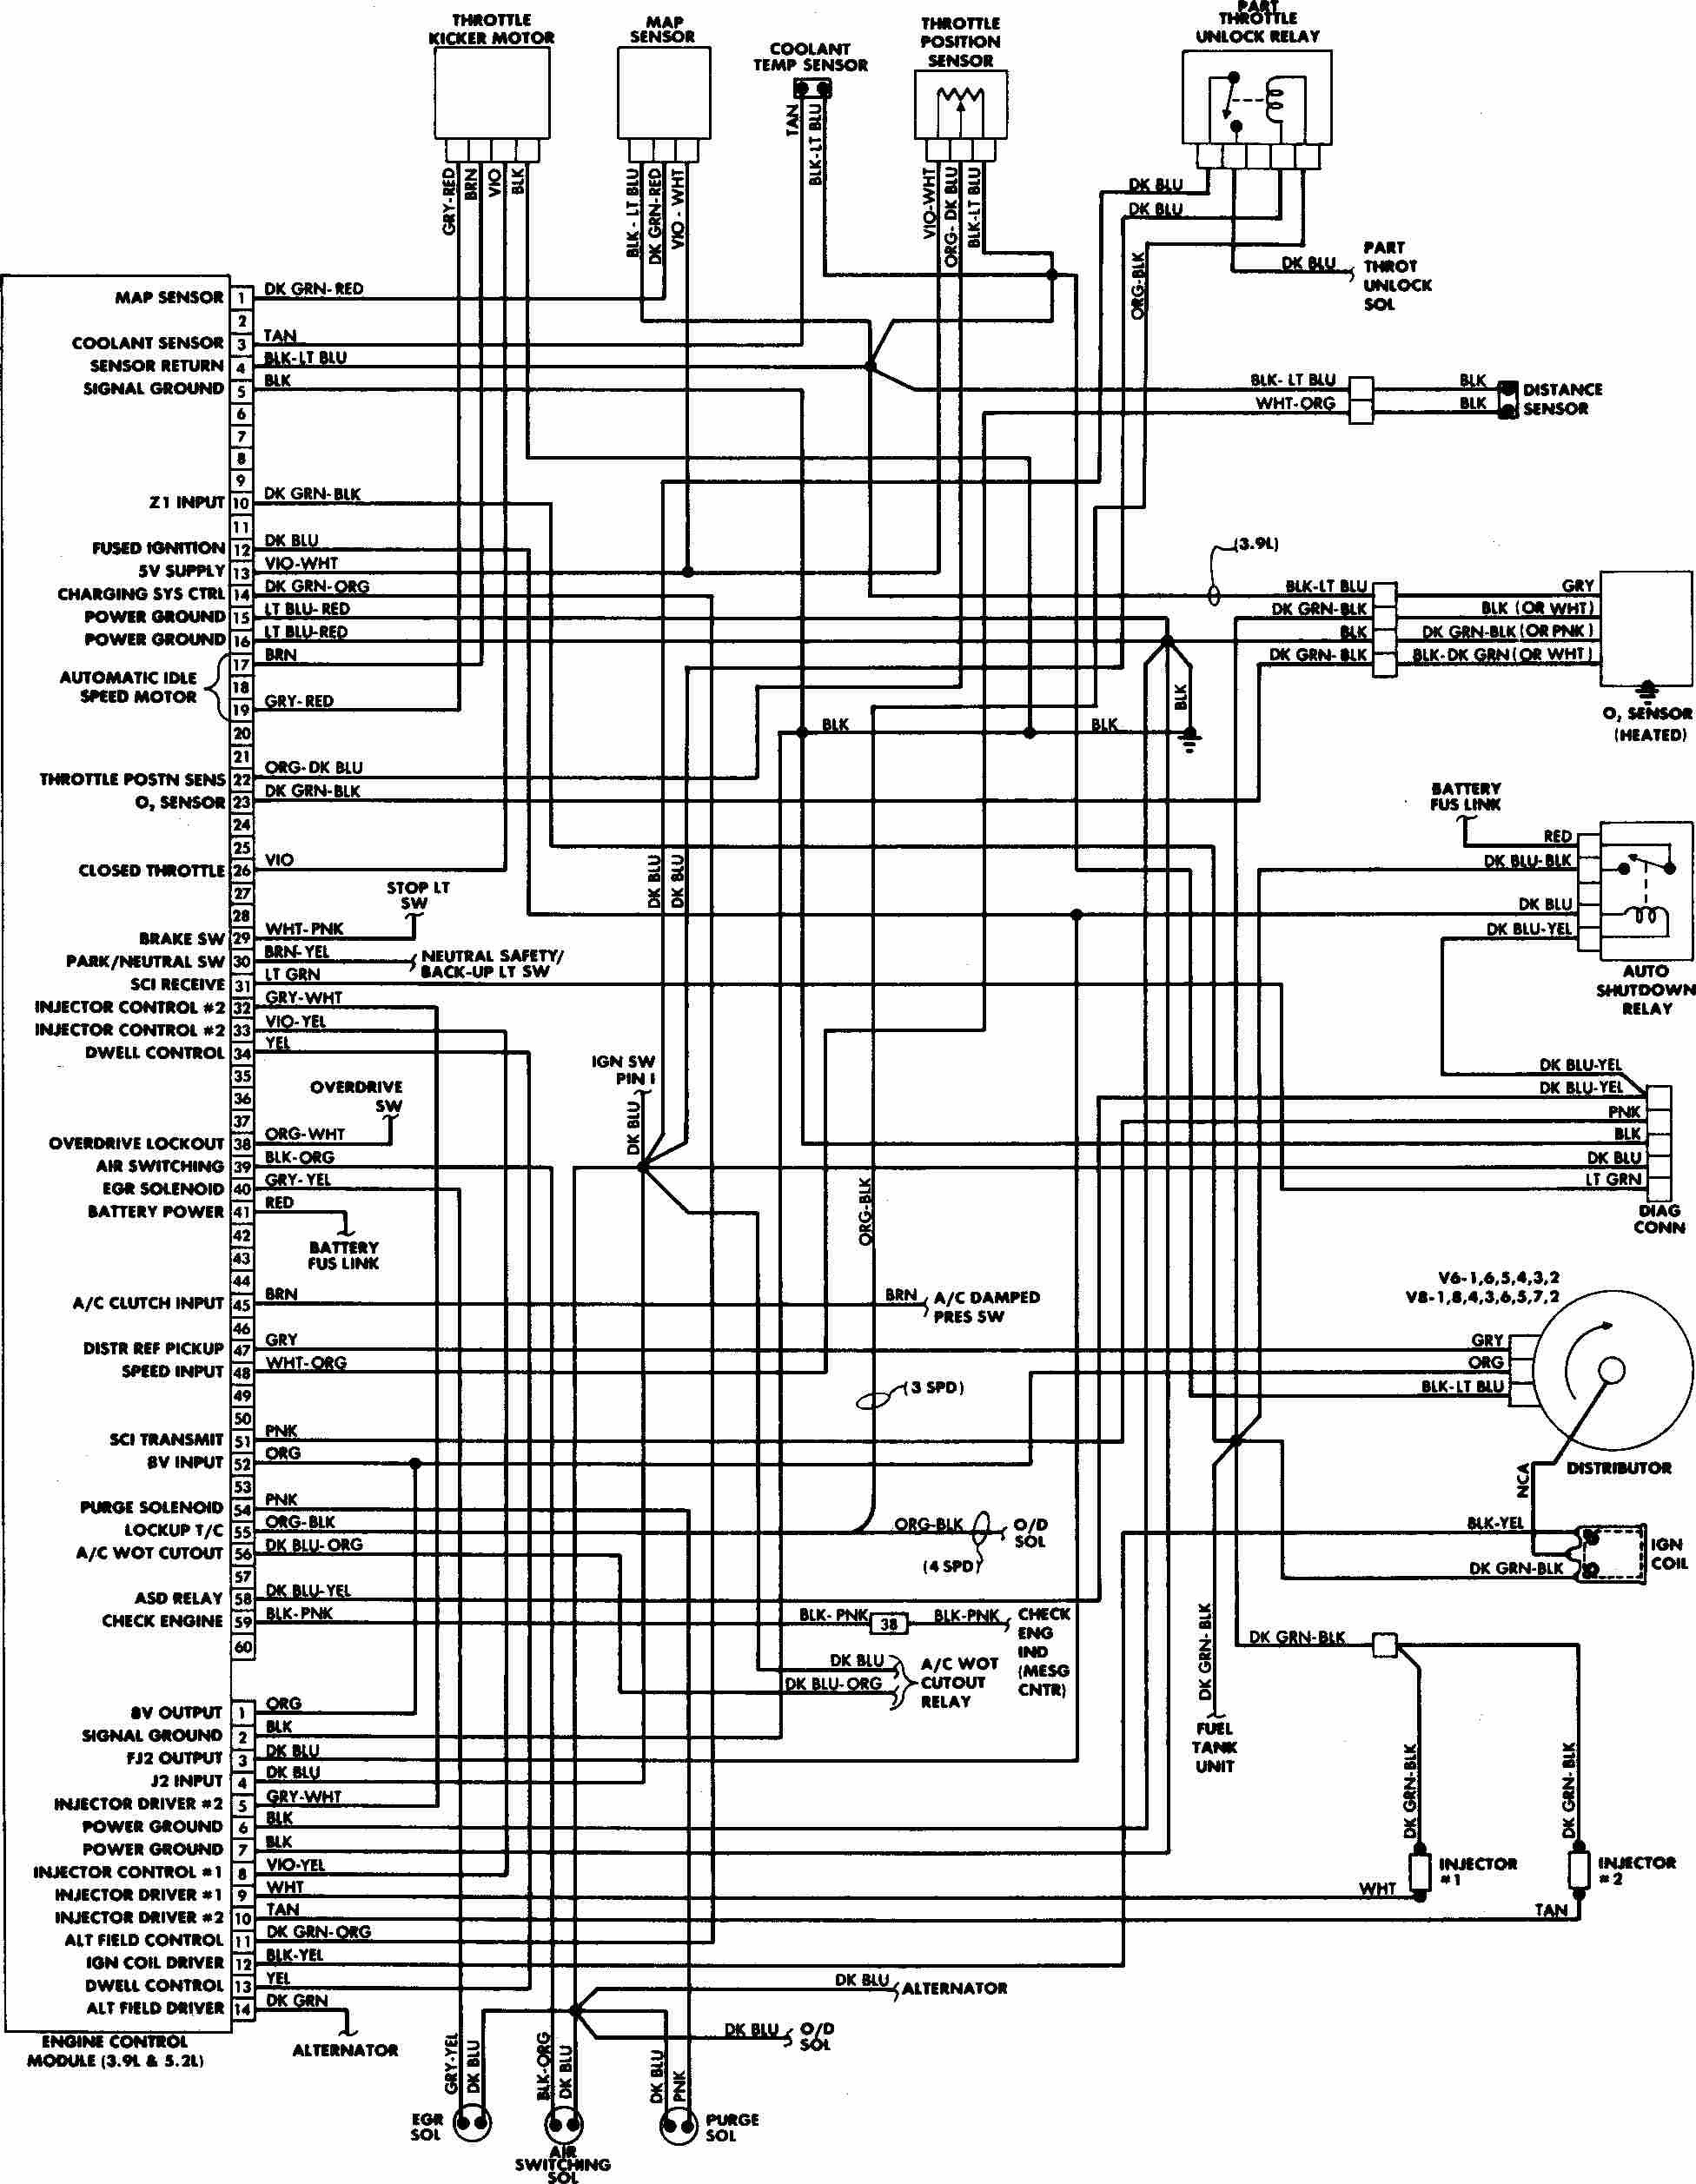 2014 dodge ram wiring diagram | free wiring diagram 1969 dodge truck engine wiring harness digram dodge truck ke wiring diagrams #13